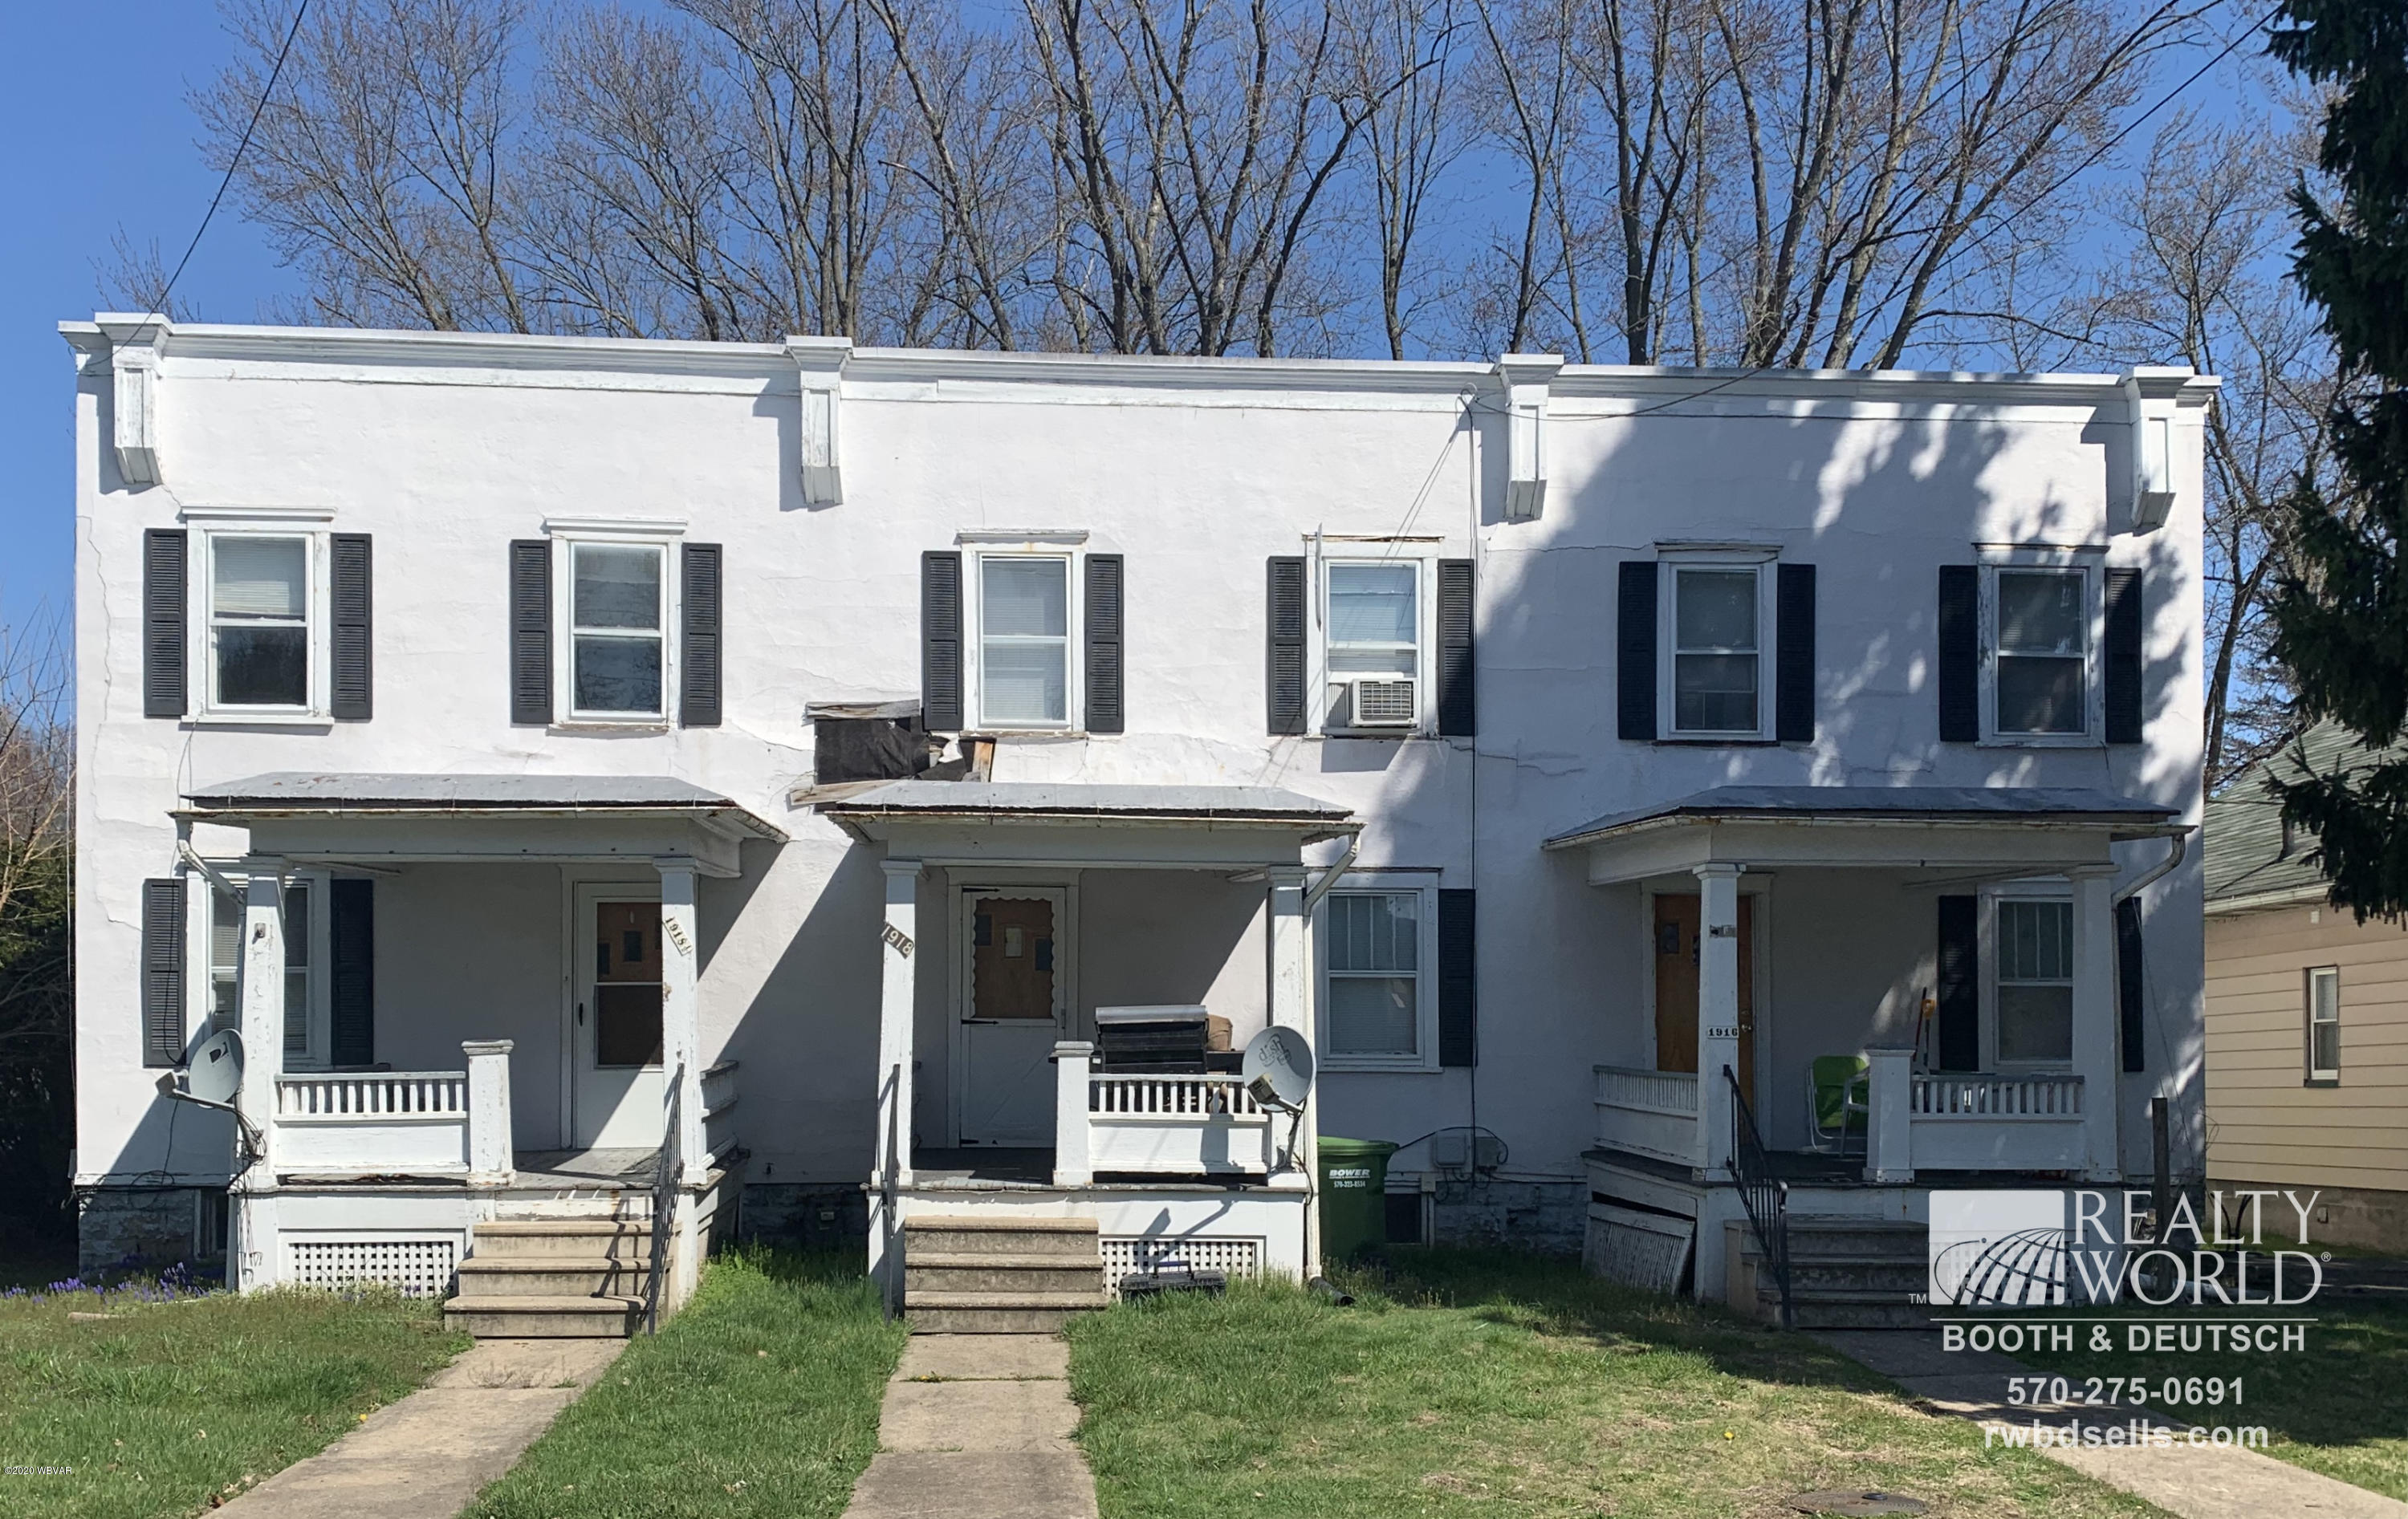 1916-1918 NEWBERRY STREET, Williamsport, PA 17701, ,Multi-units,For sale,NEWBERRY,WB-89969